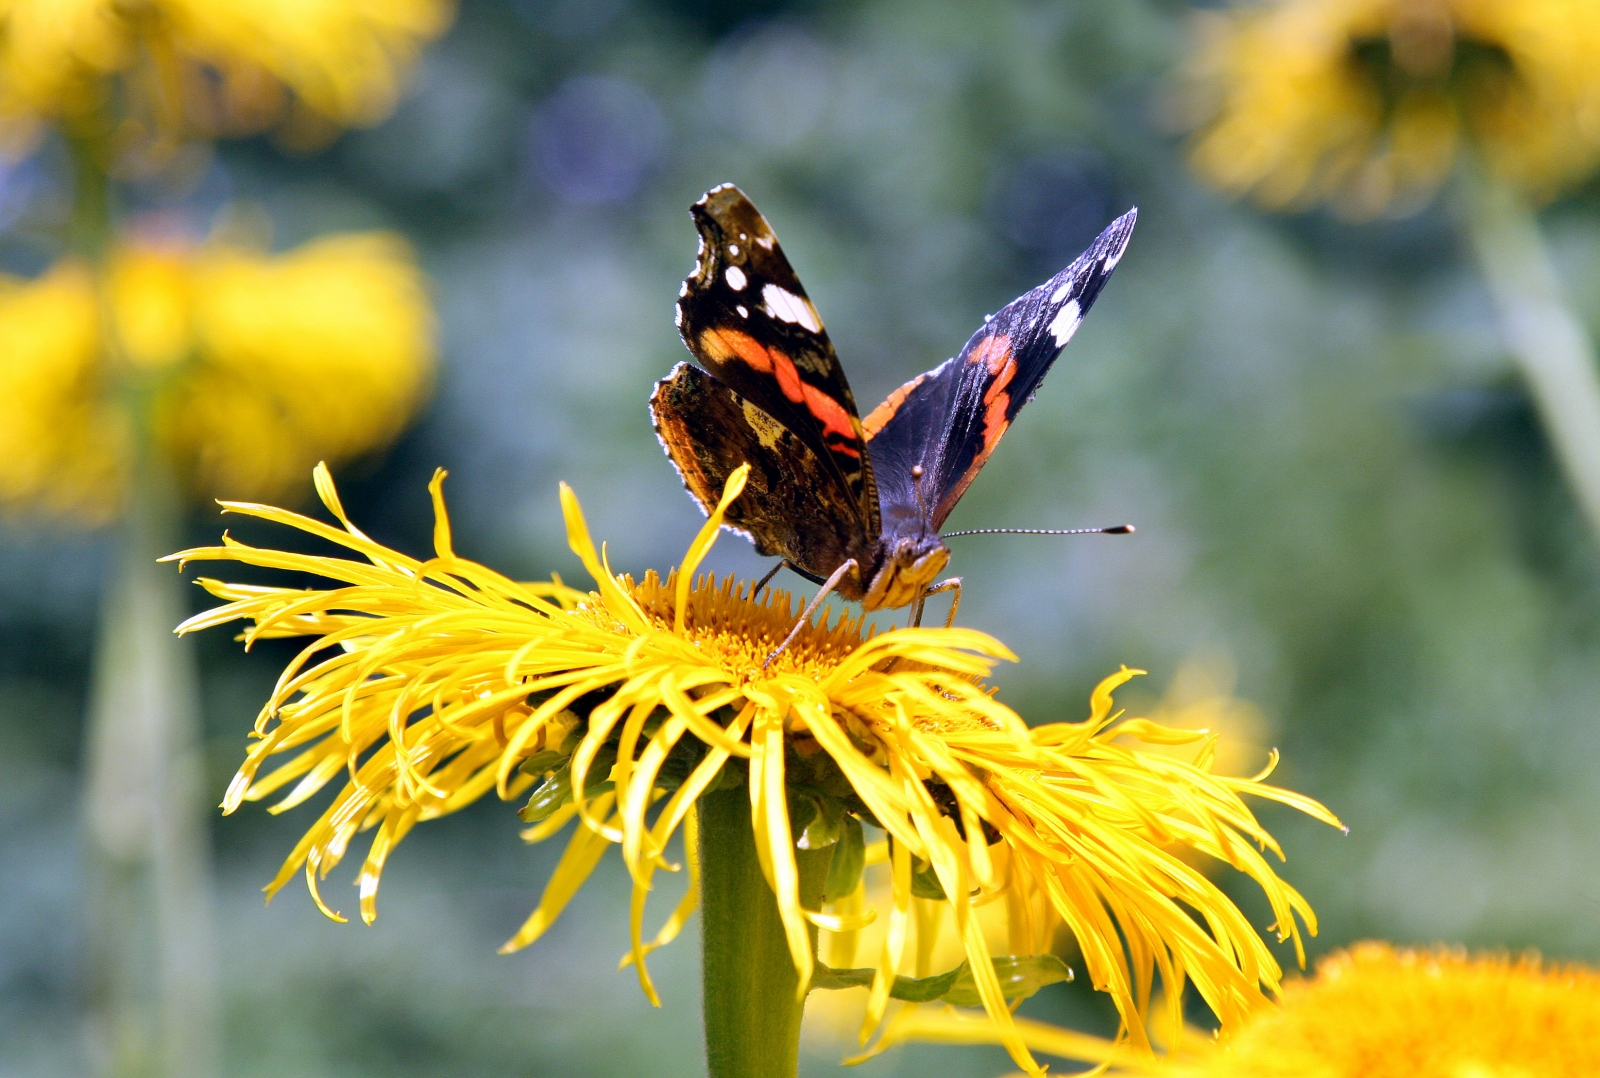 A red admiral butterfly collecting nectar